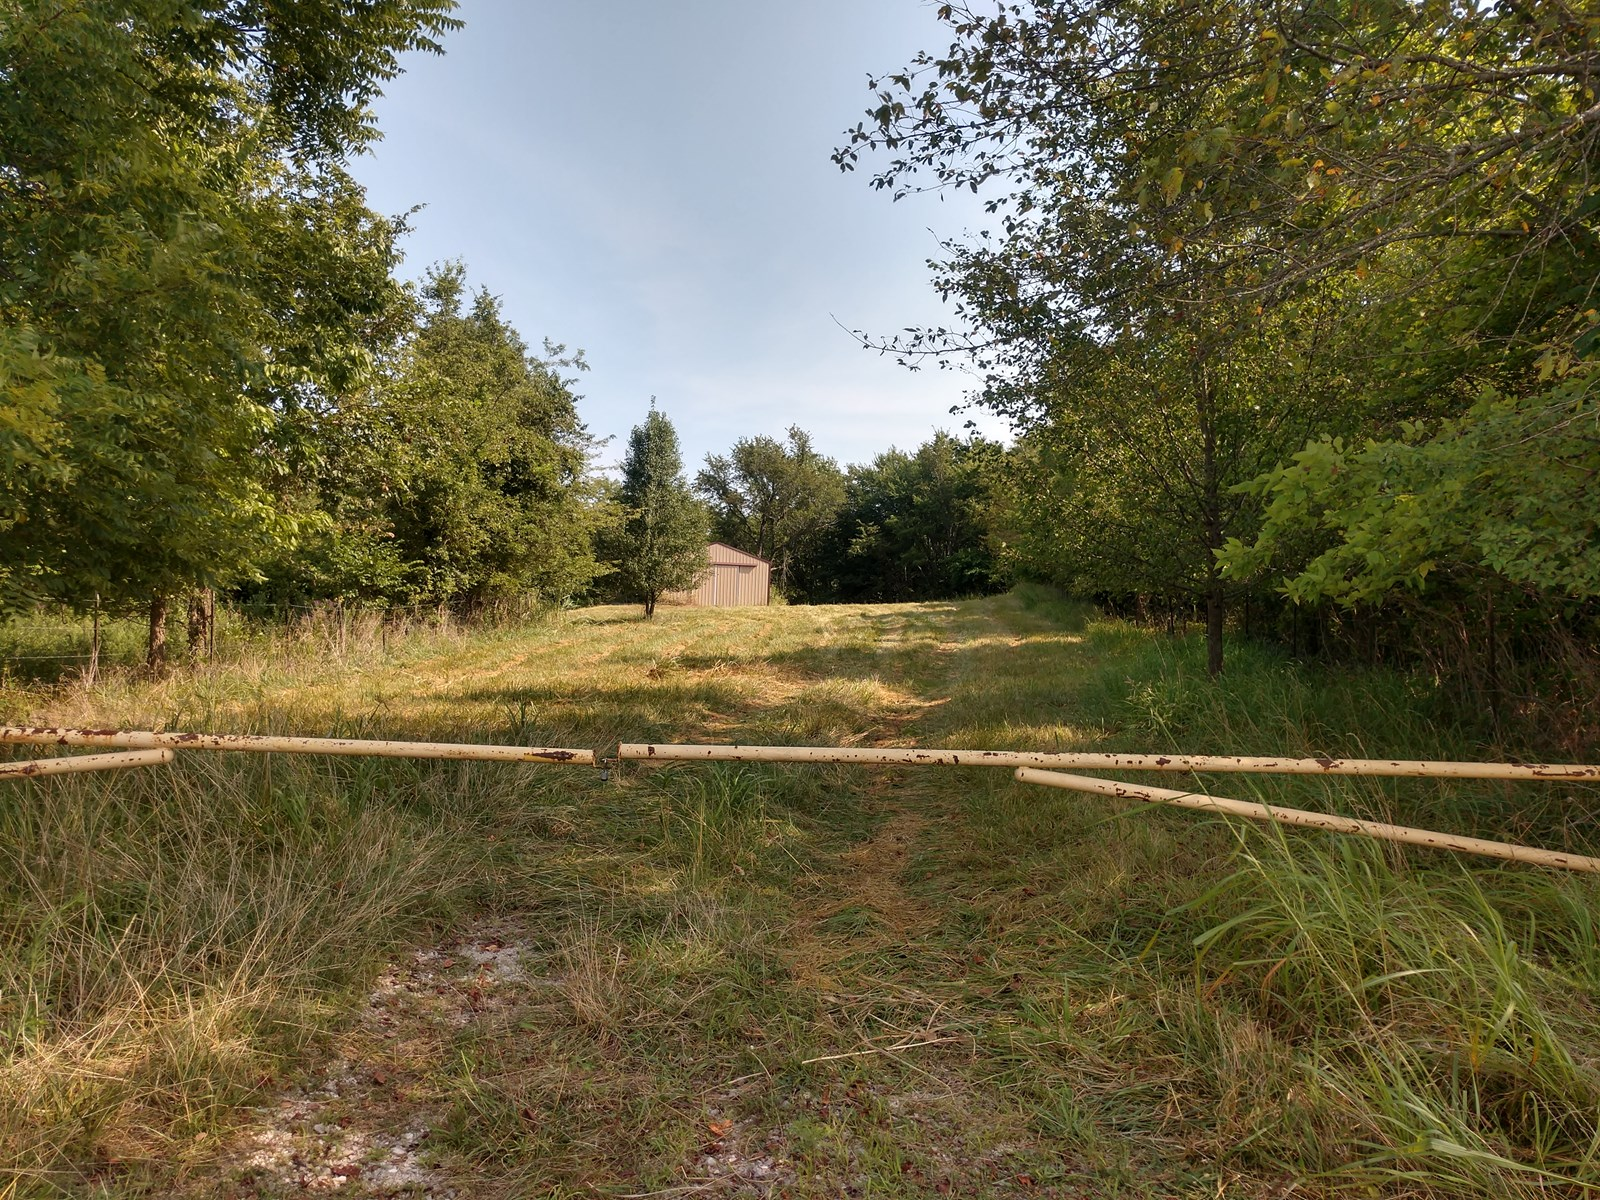 Secluded, Wooded Land with Utilities Ready To Build On